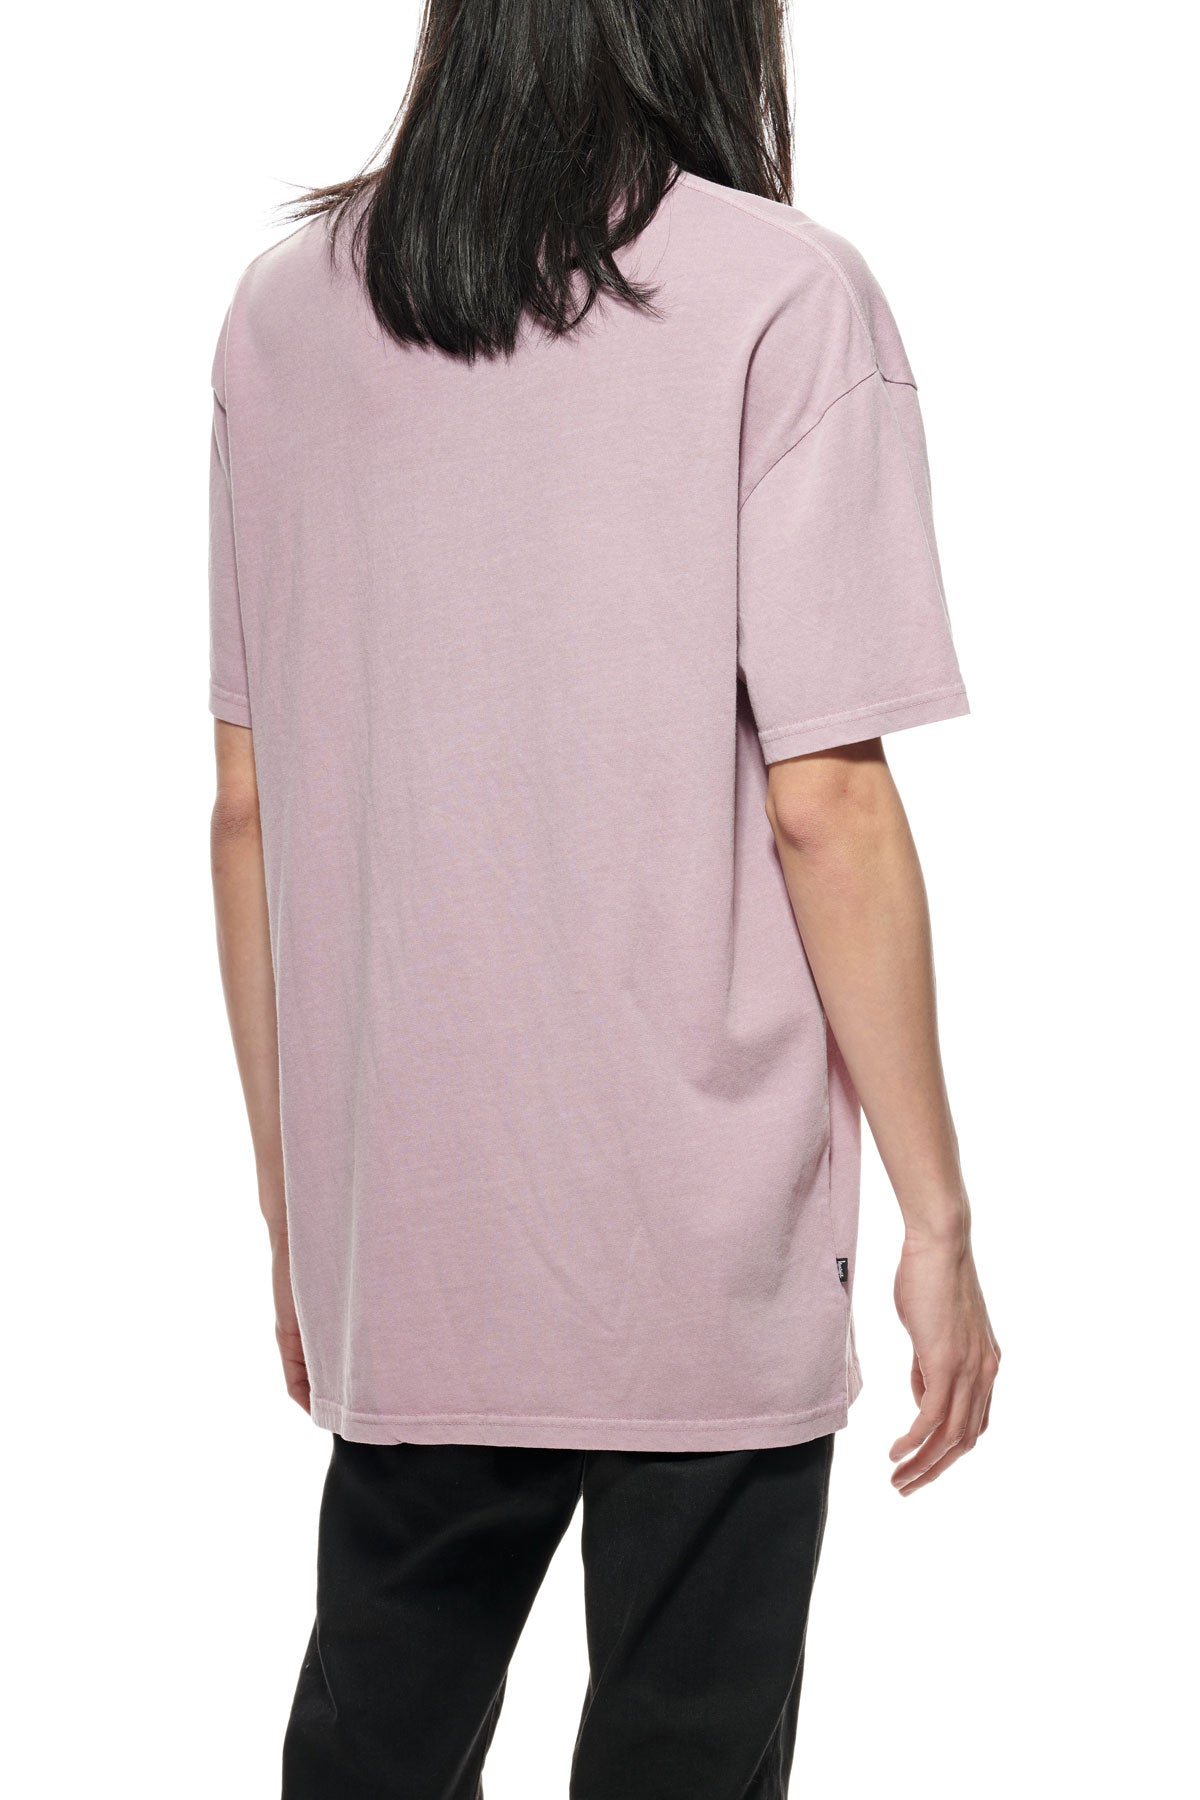 Classic Gear Pocket SS Tee